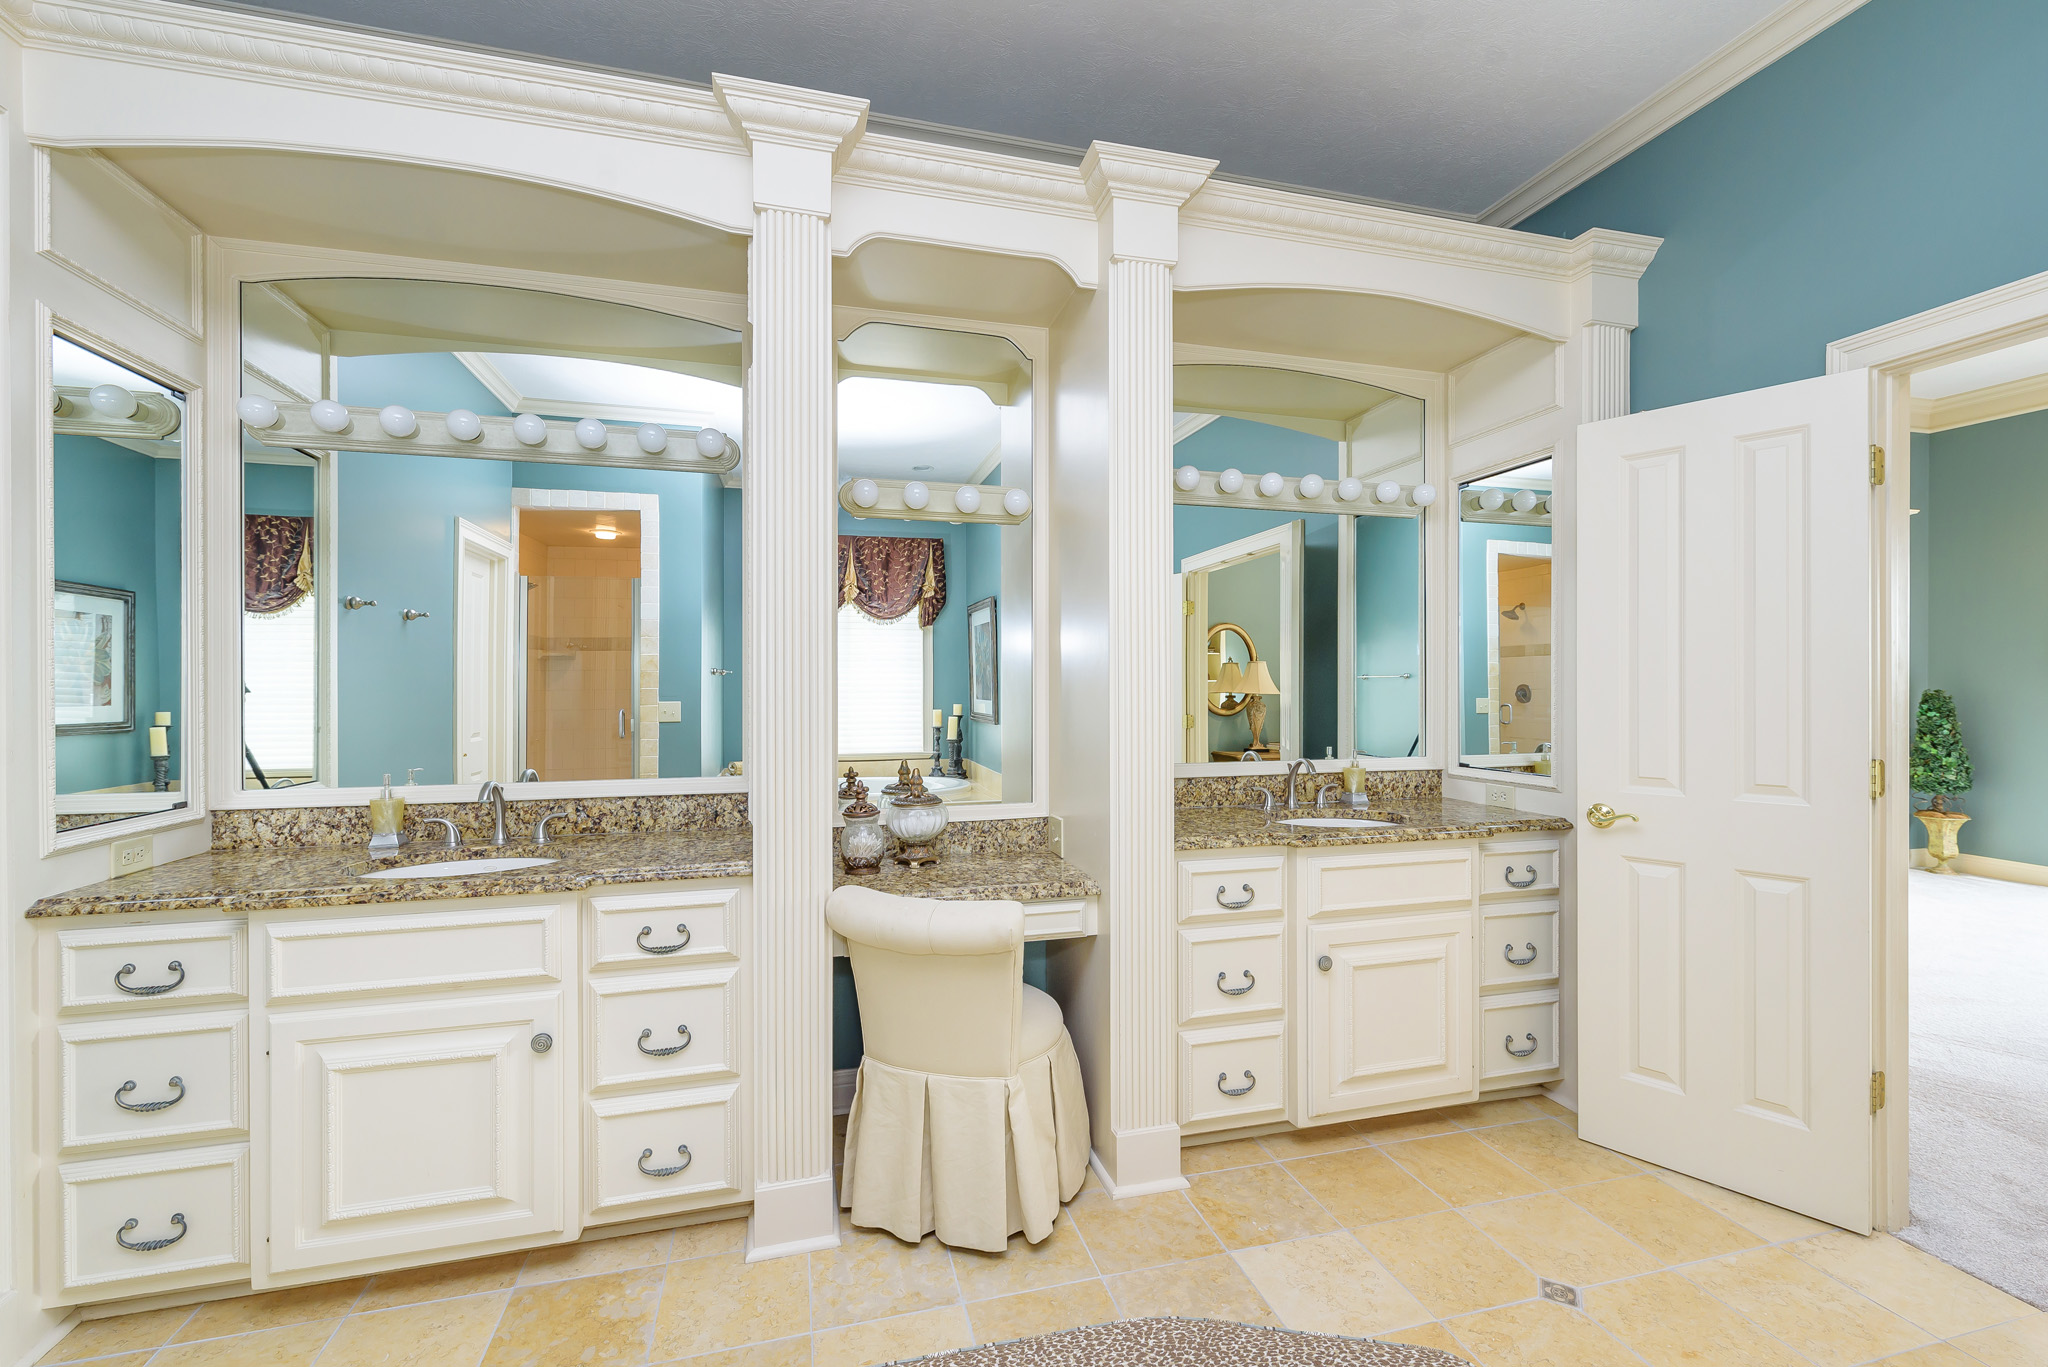 14_Master Bathroom.jpg